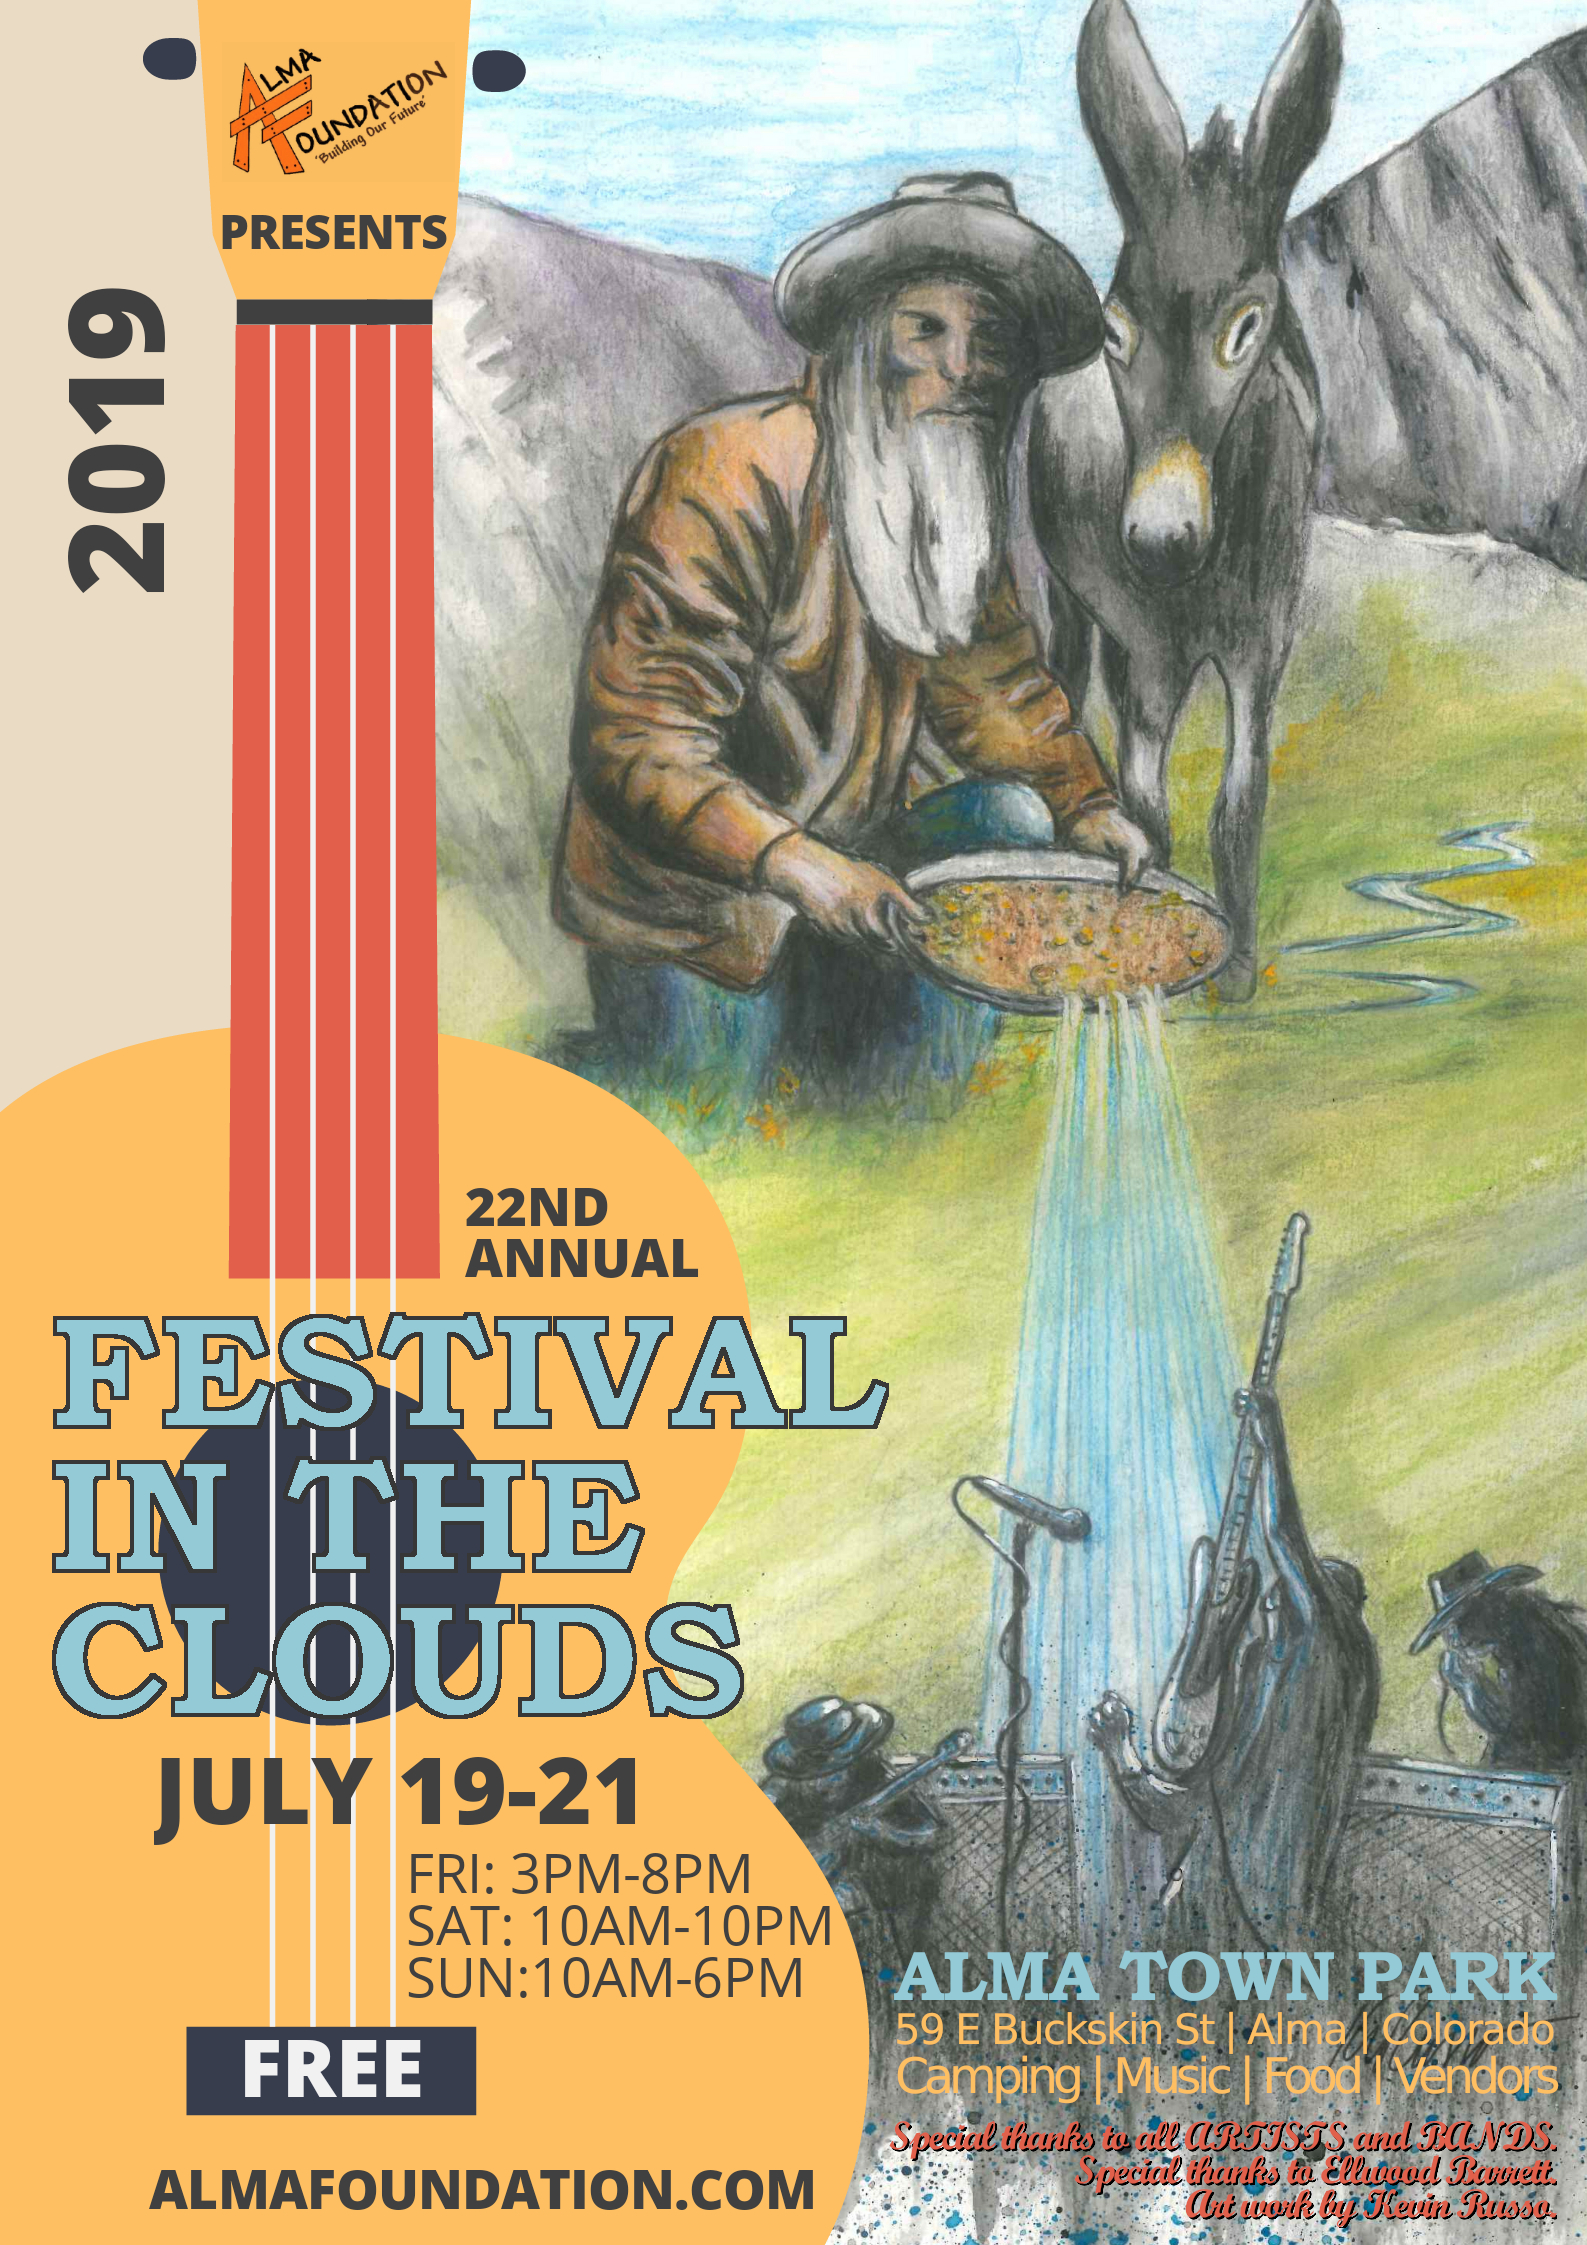 22nd Annual Festival in the Clouds | Alma Foundation